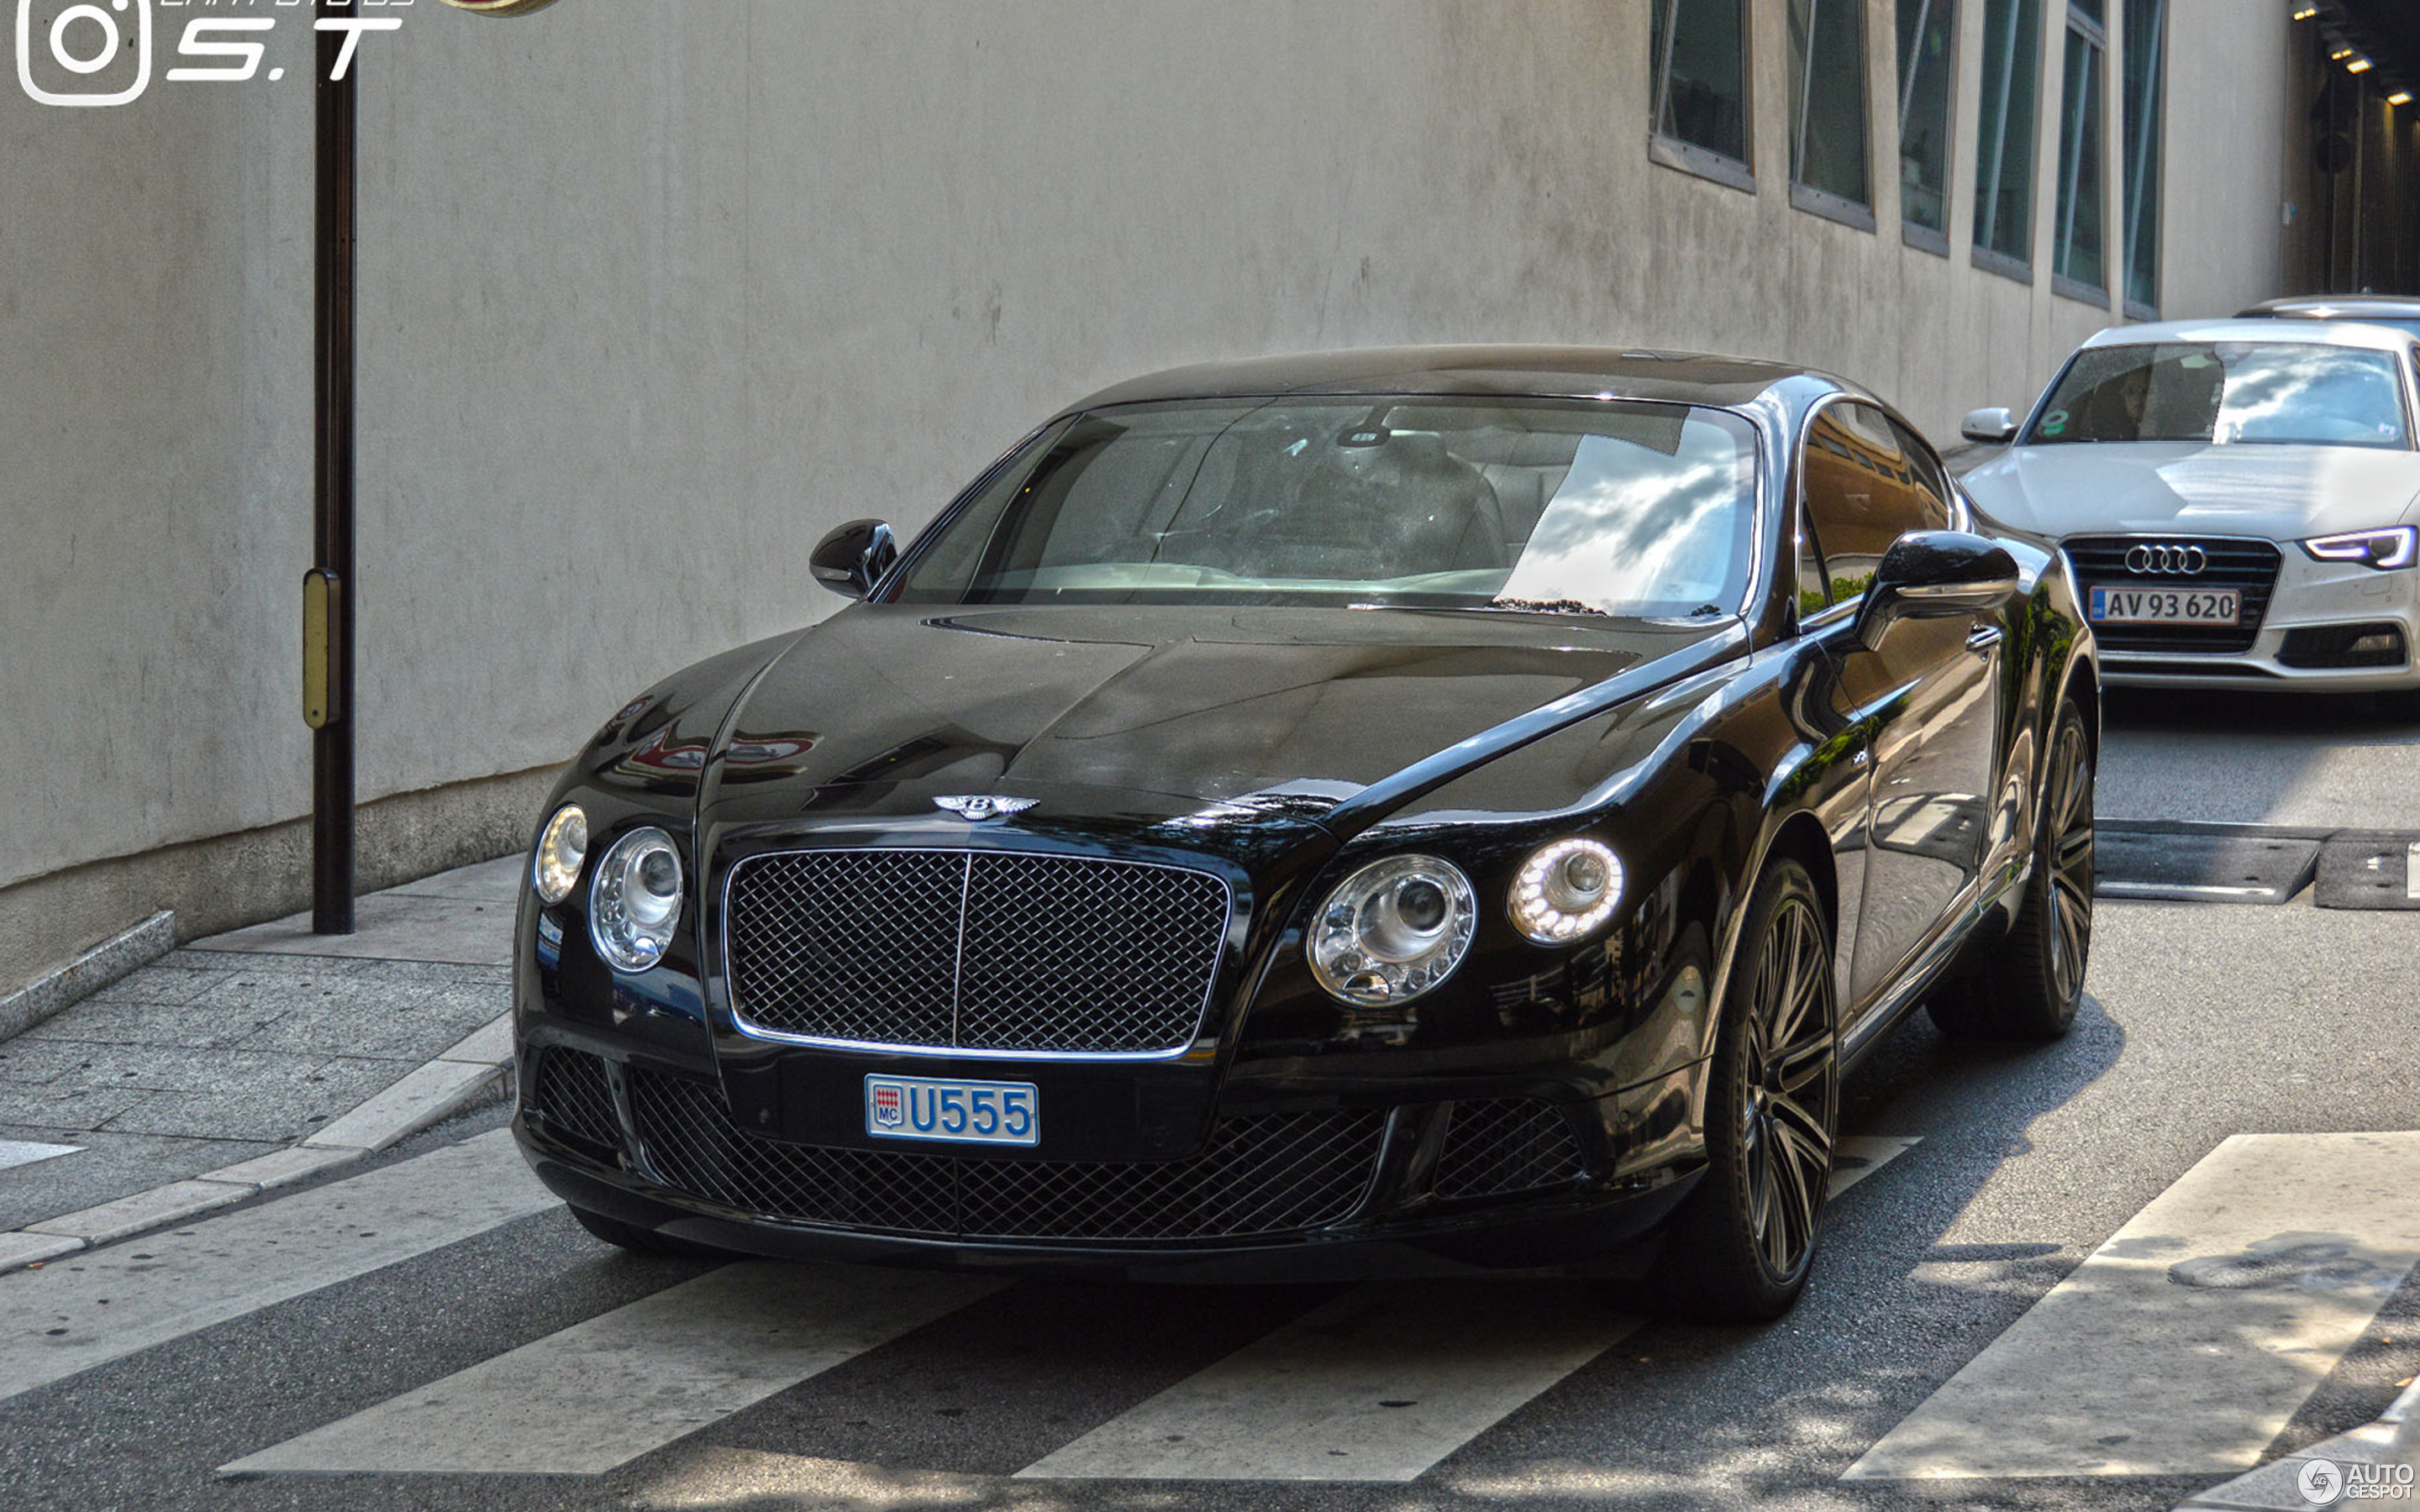 reviews gt s for used review bentley convertible continental car sale